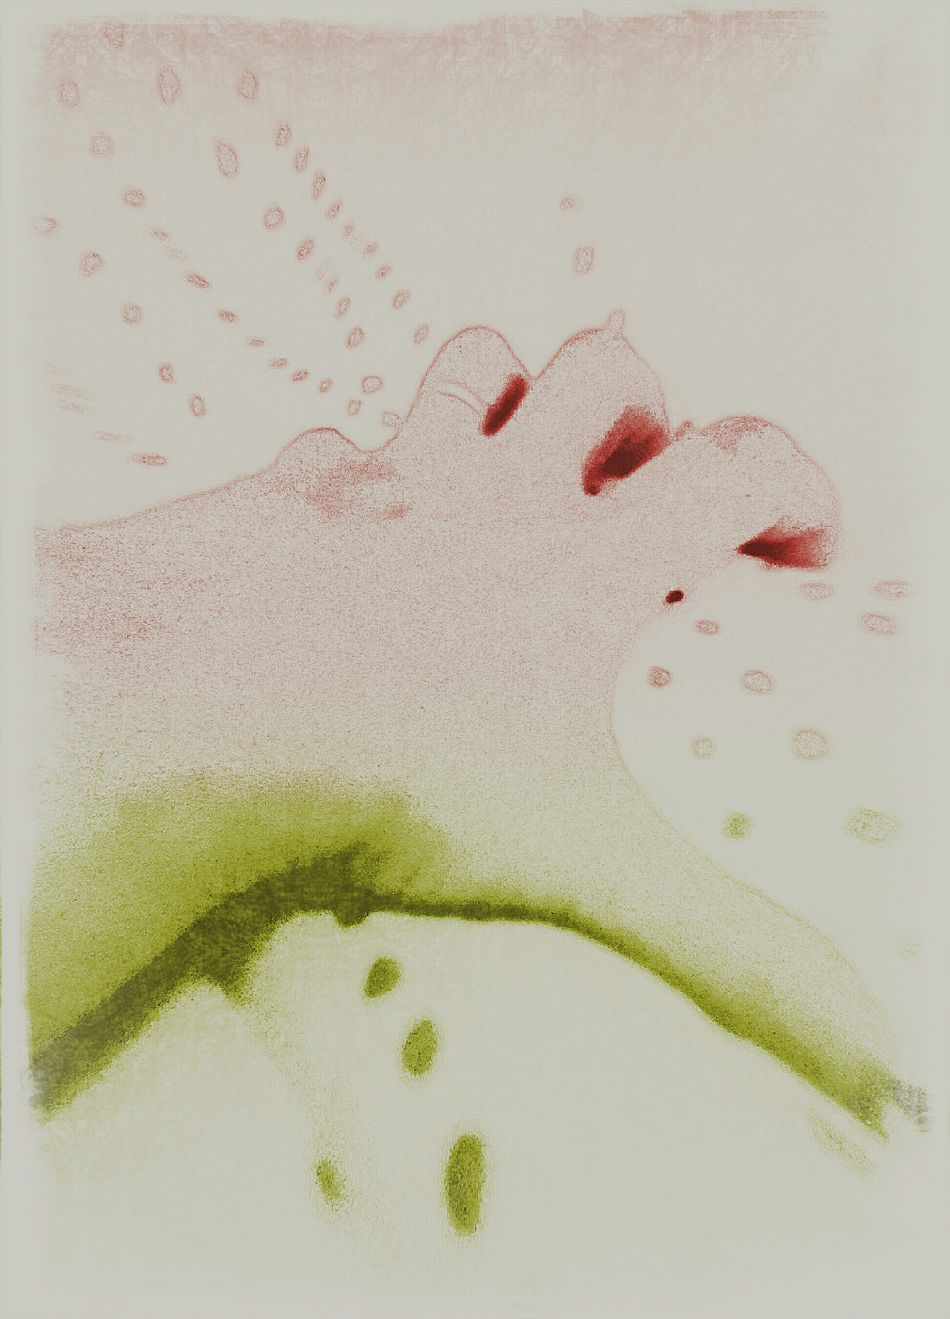 Cut And Paste Hand Human Body Part Close-up Textile People Uptight Nervous Tensed Pastel Colors